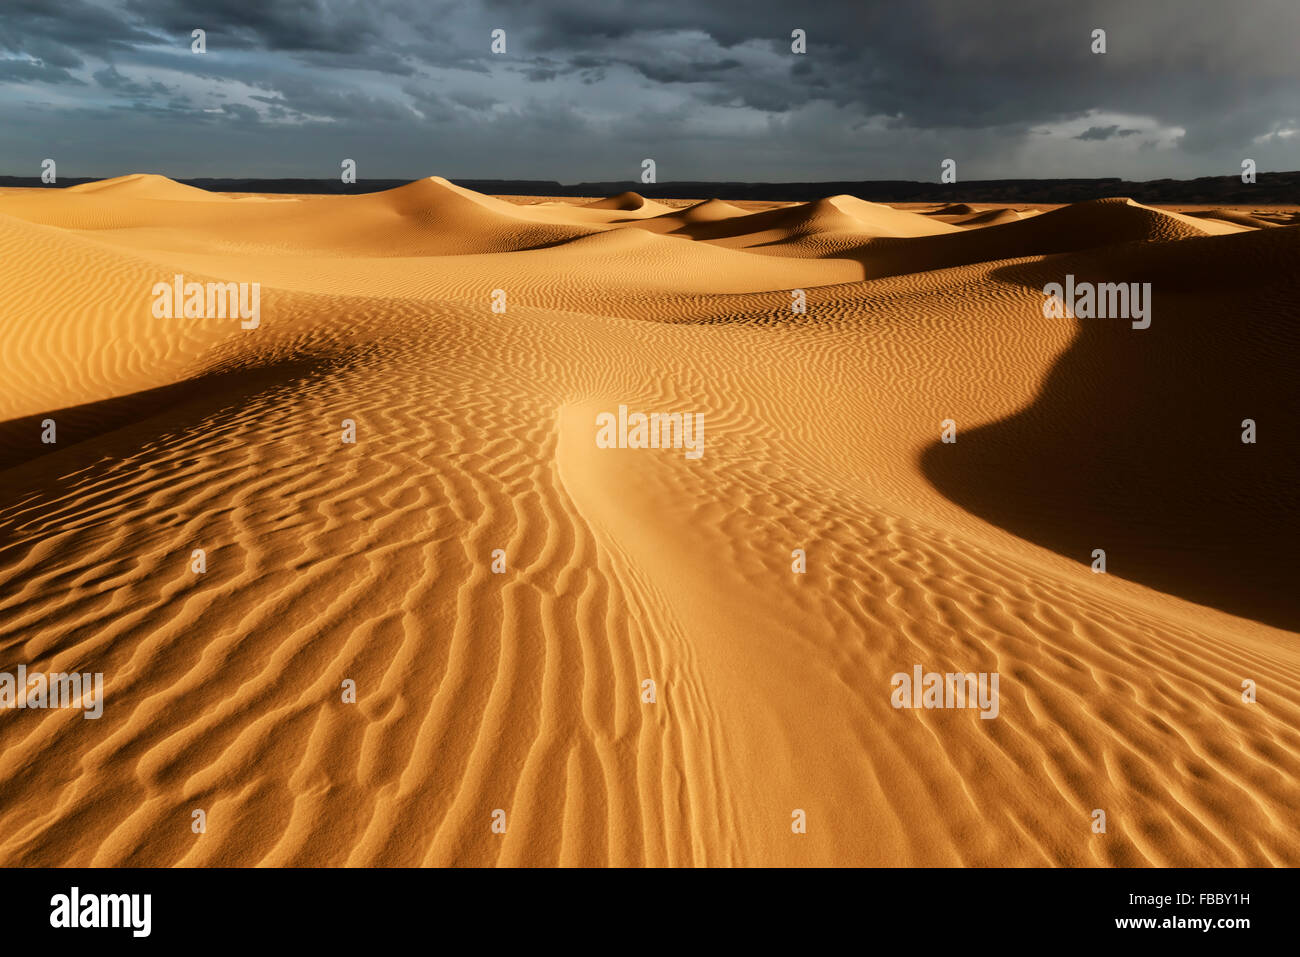 Sahara sand dunes with stormy, cloudy sky, Morocco. - Stock Image